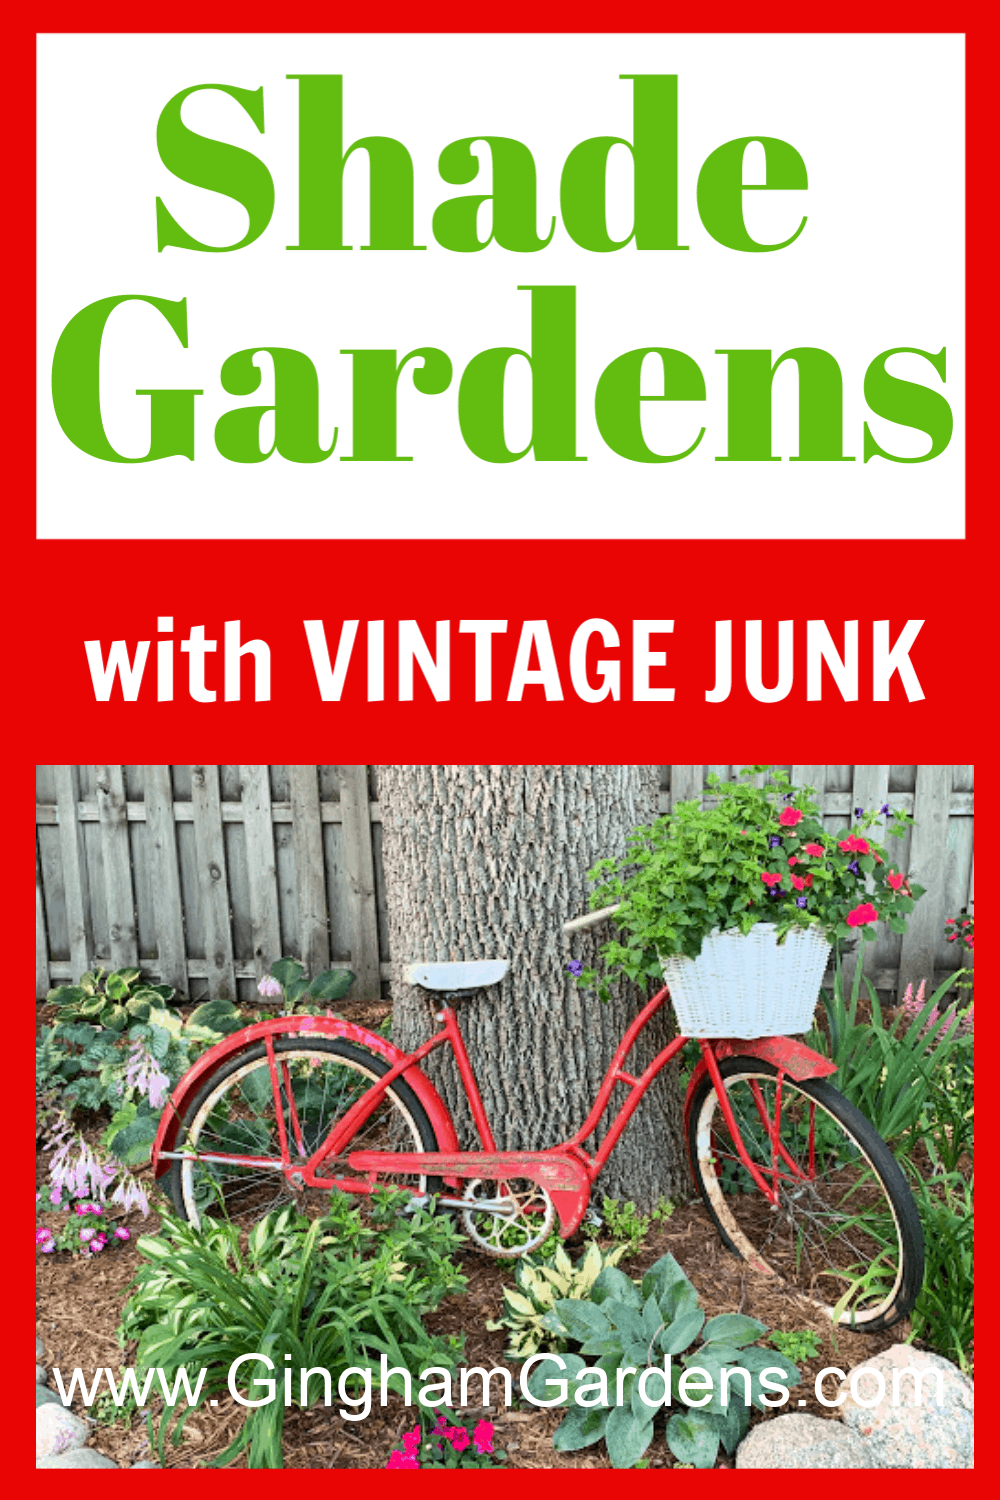 Image of Bicycle used as a planter with text overlay Shade Gardens with Vintage Junk